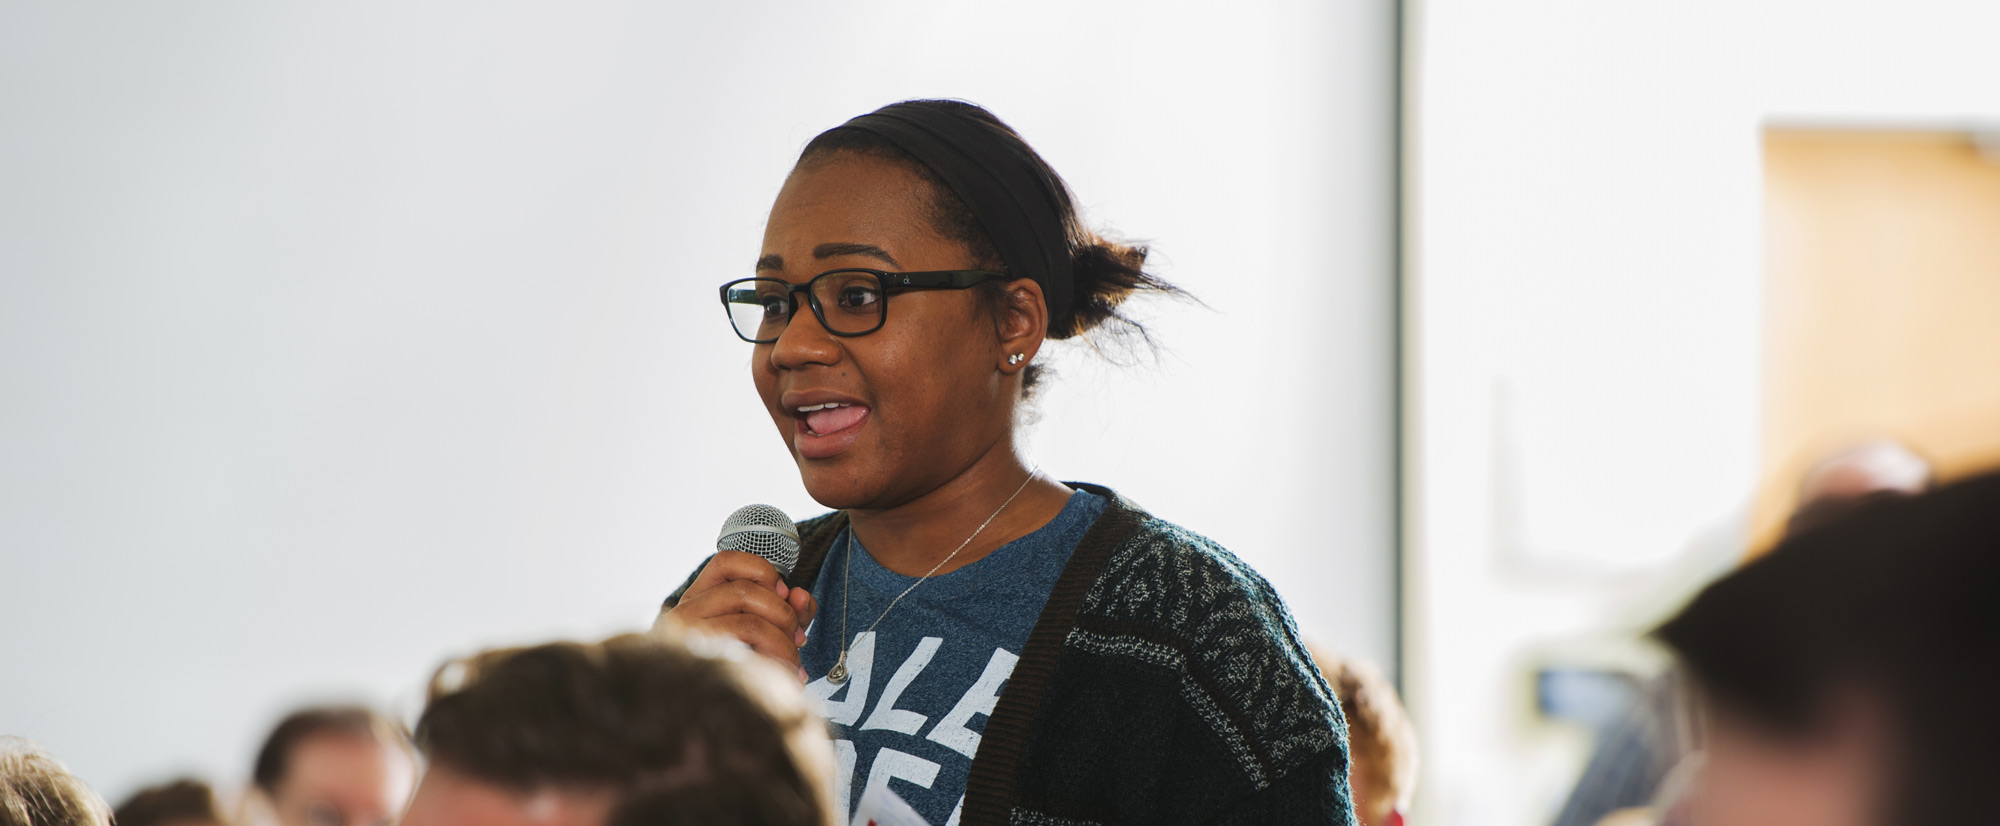 Girl speaking at a political debate.